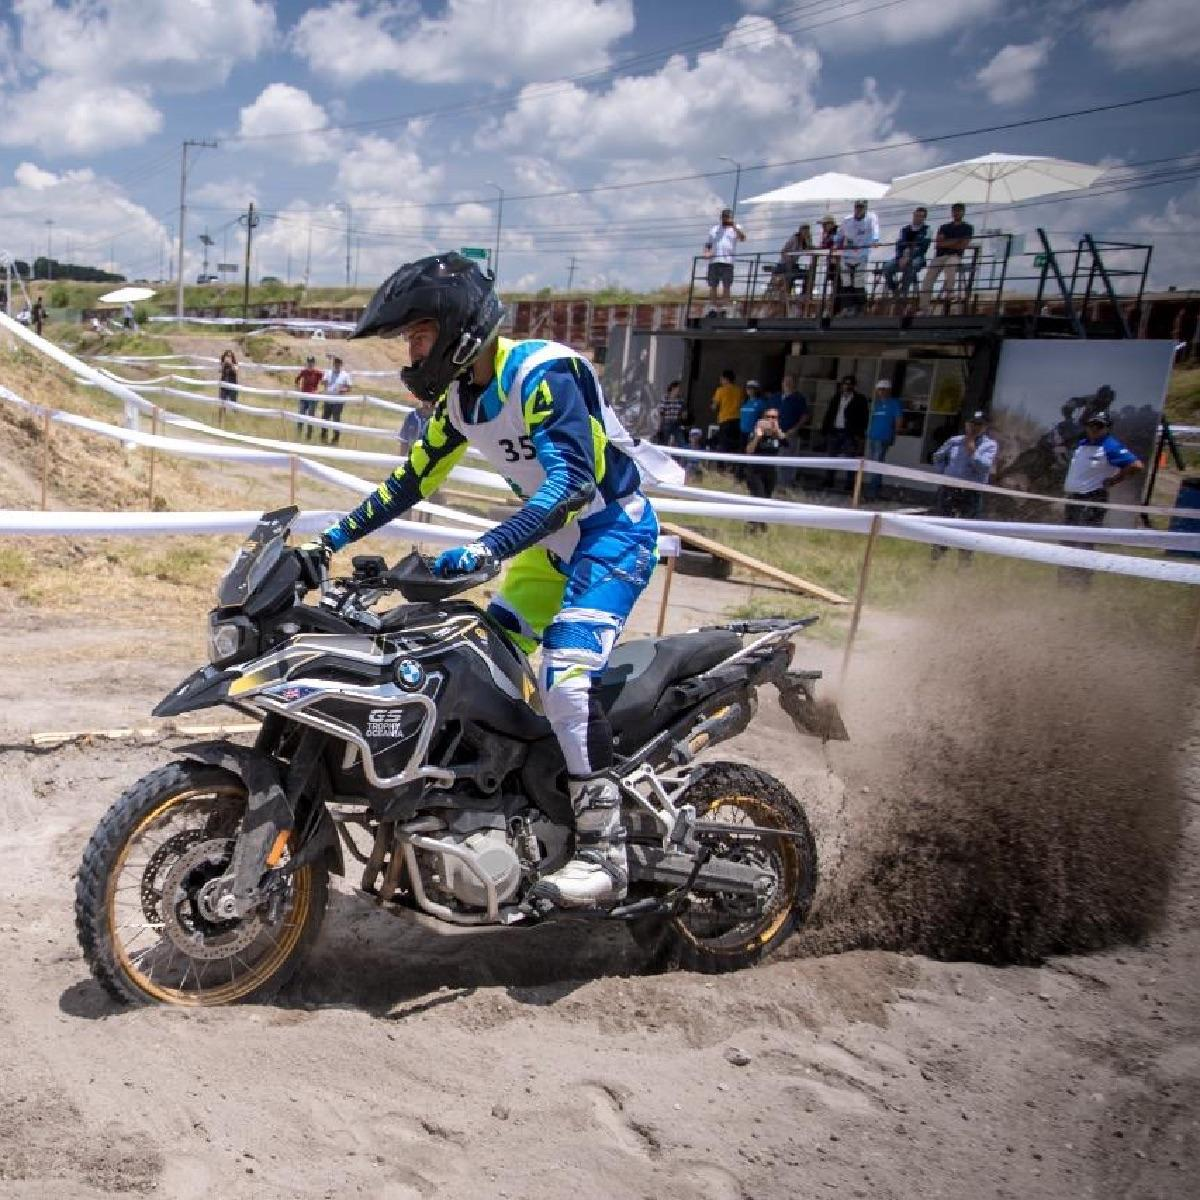 Great impressions from the #GSTrophyQualifier of team Latin America. Looks like you had fun, guys! 🏍 #MakeLifeARide #SpiritOfGS #BMWMotorrad